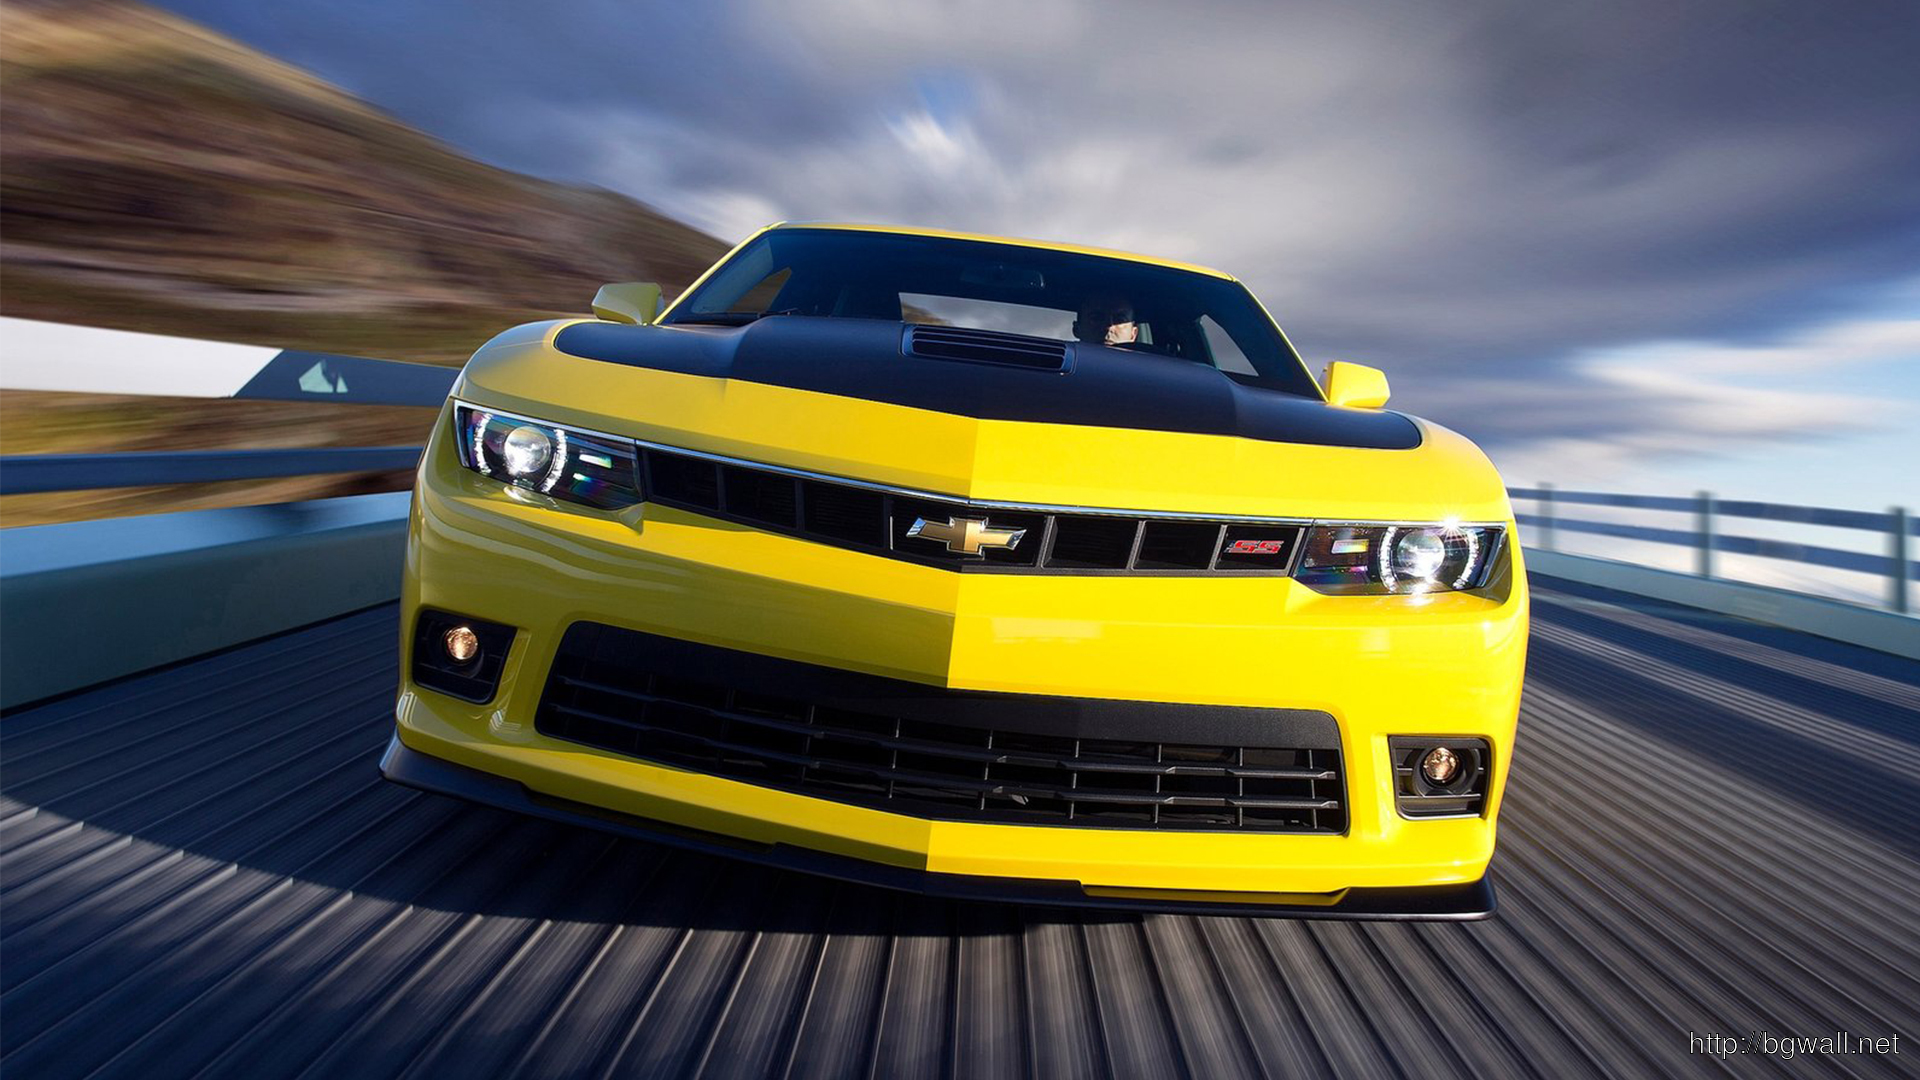 chevrolet camaro laptop wallpaper chevrolet camaro 2014 wallpaper 1920x1080